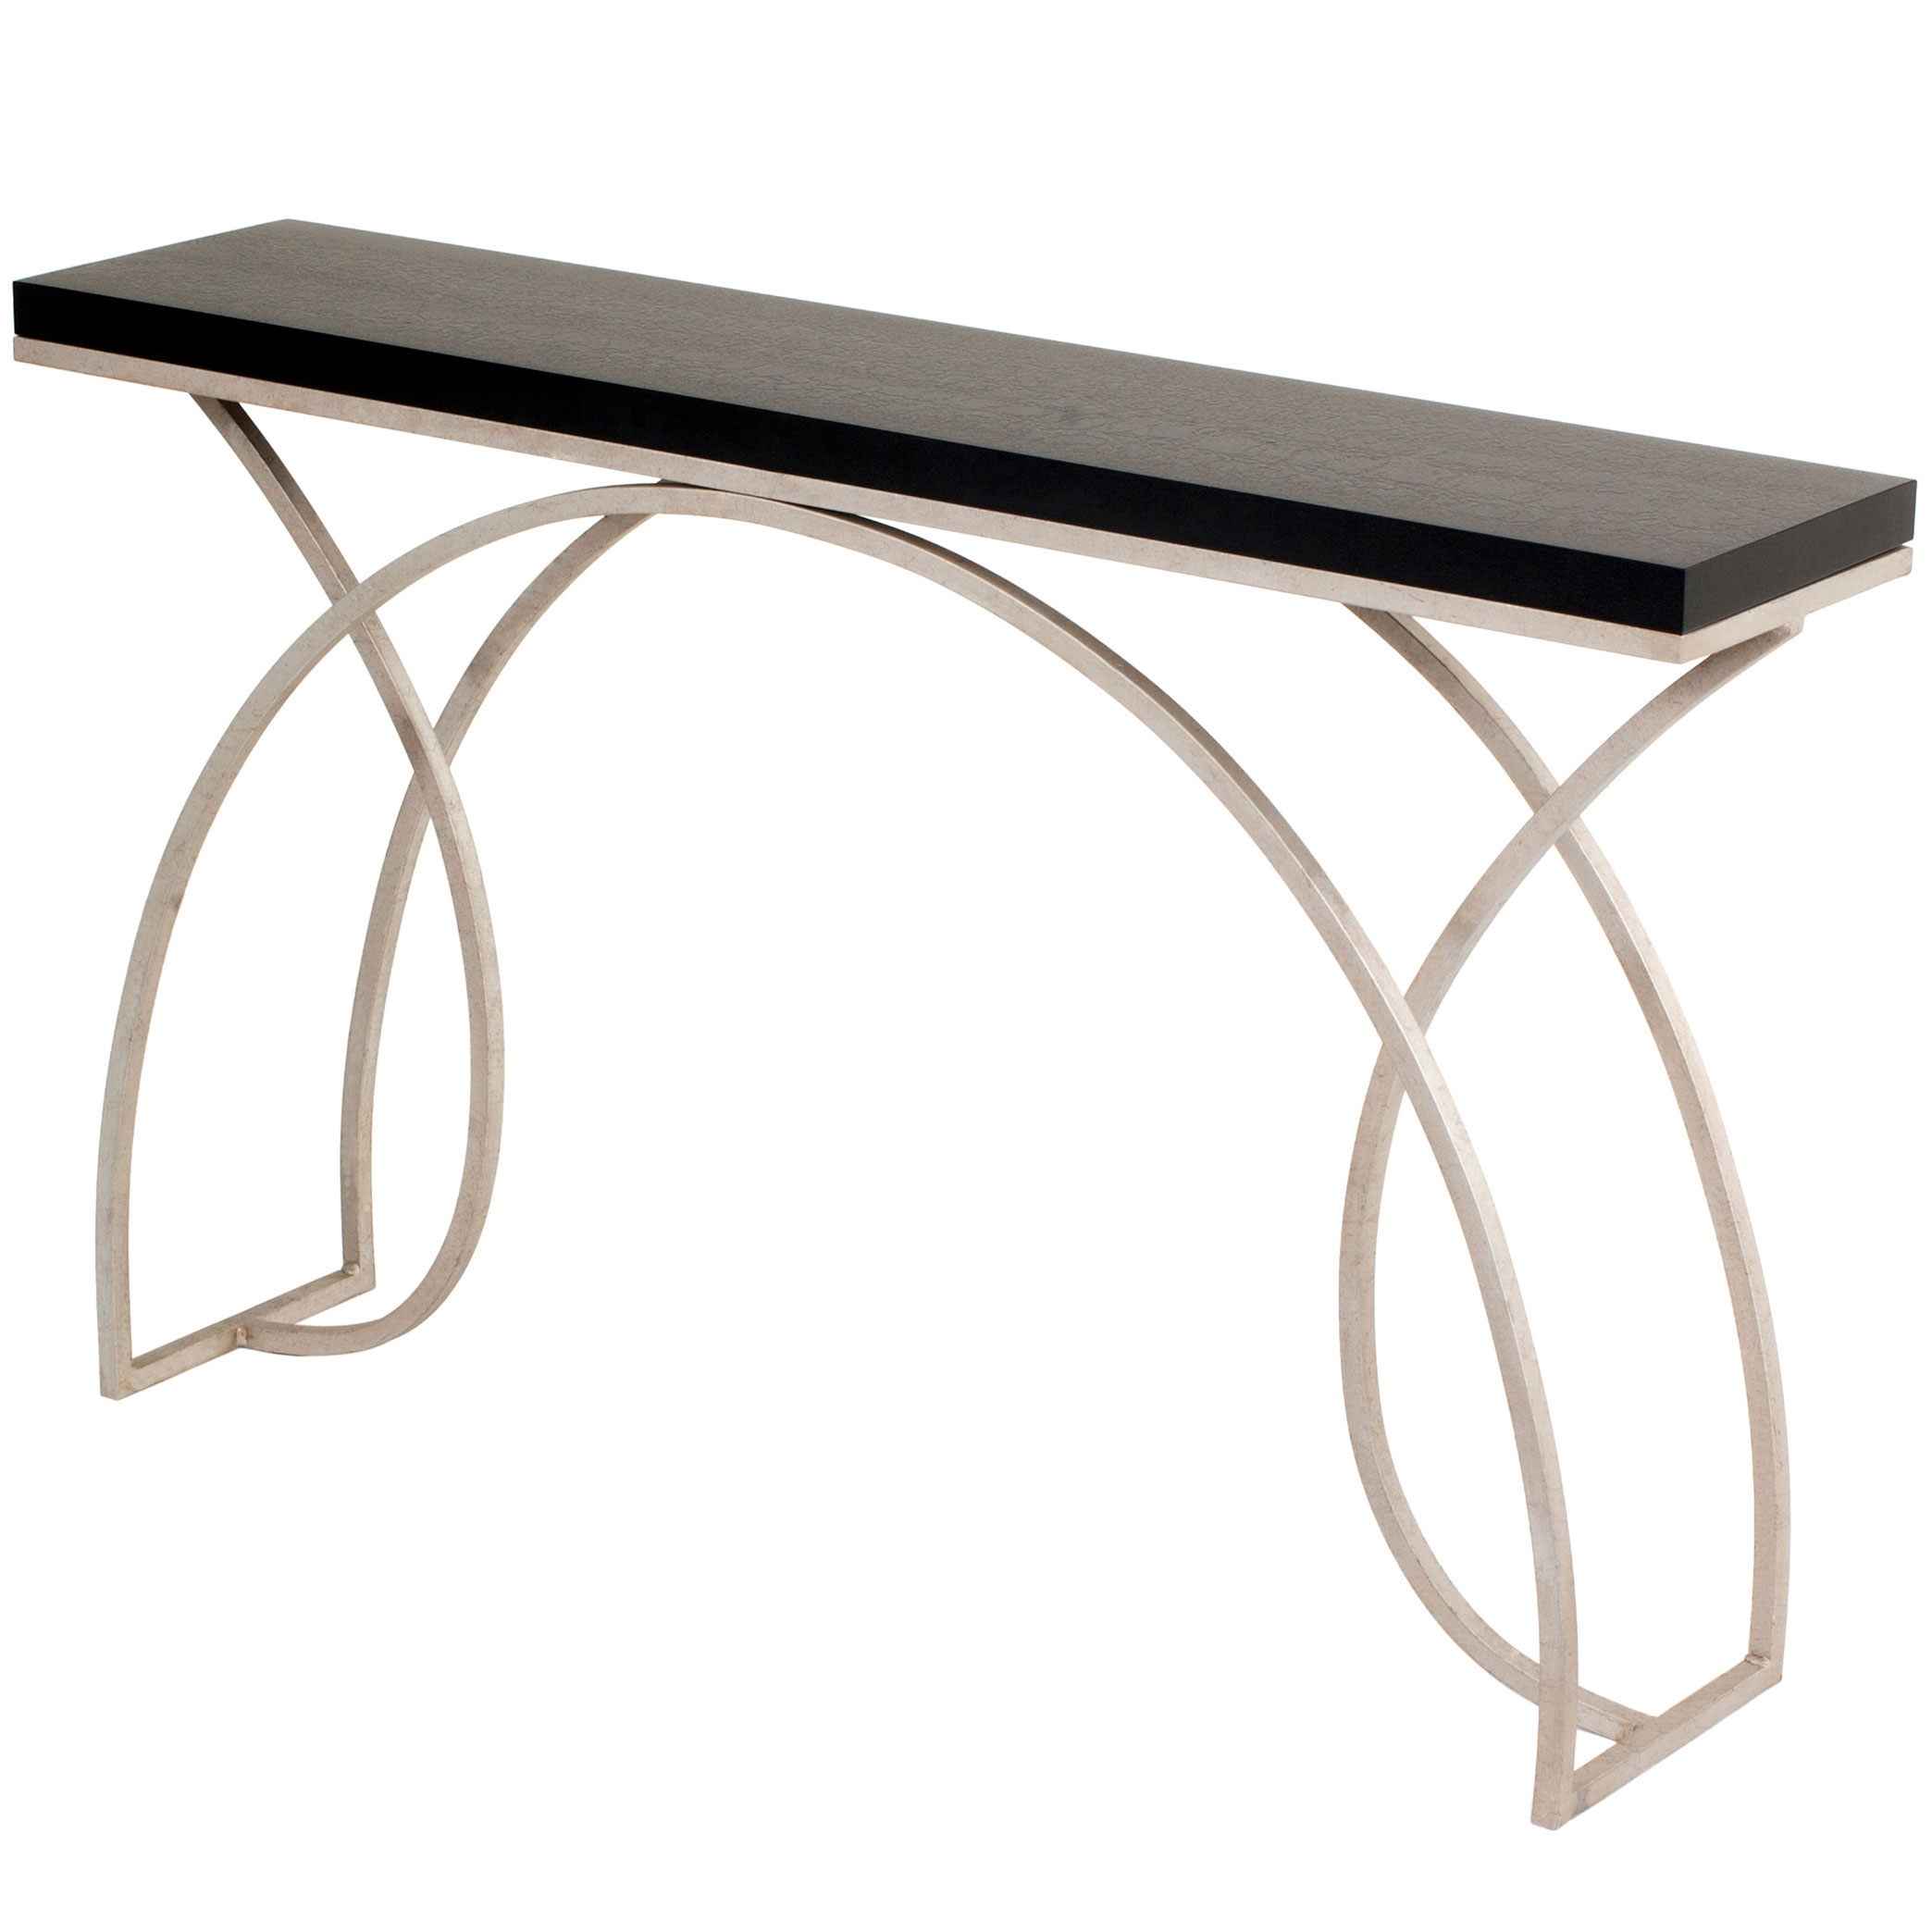 Monarch 60 in Iron Console Table 10 Finish and Top Options